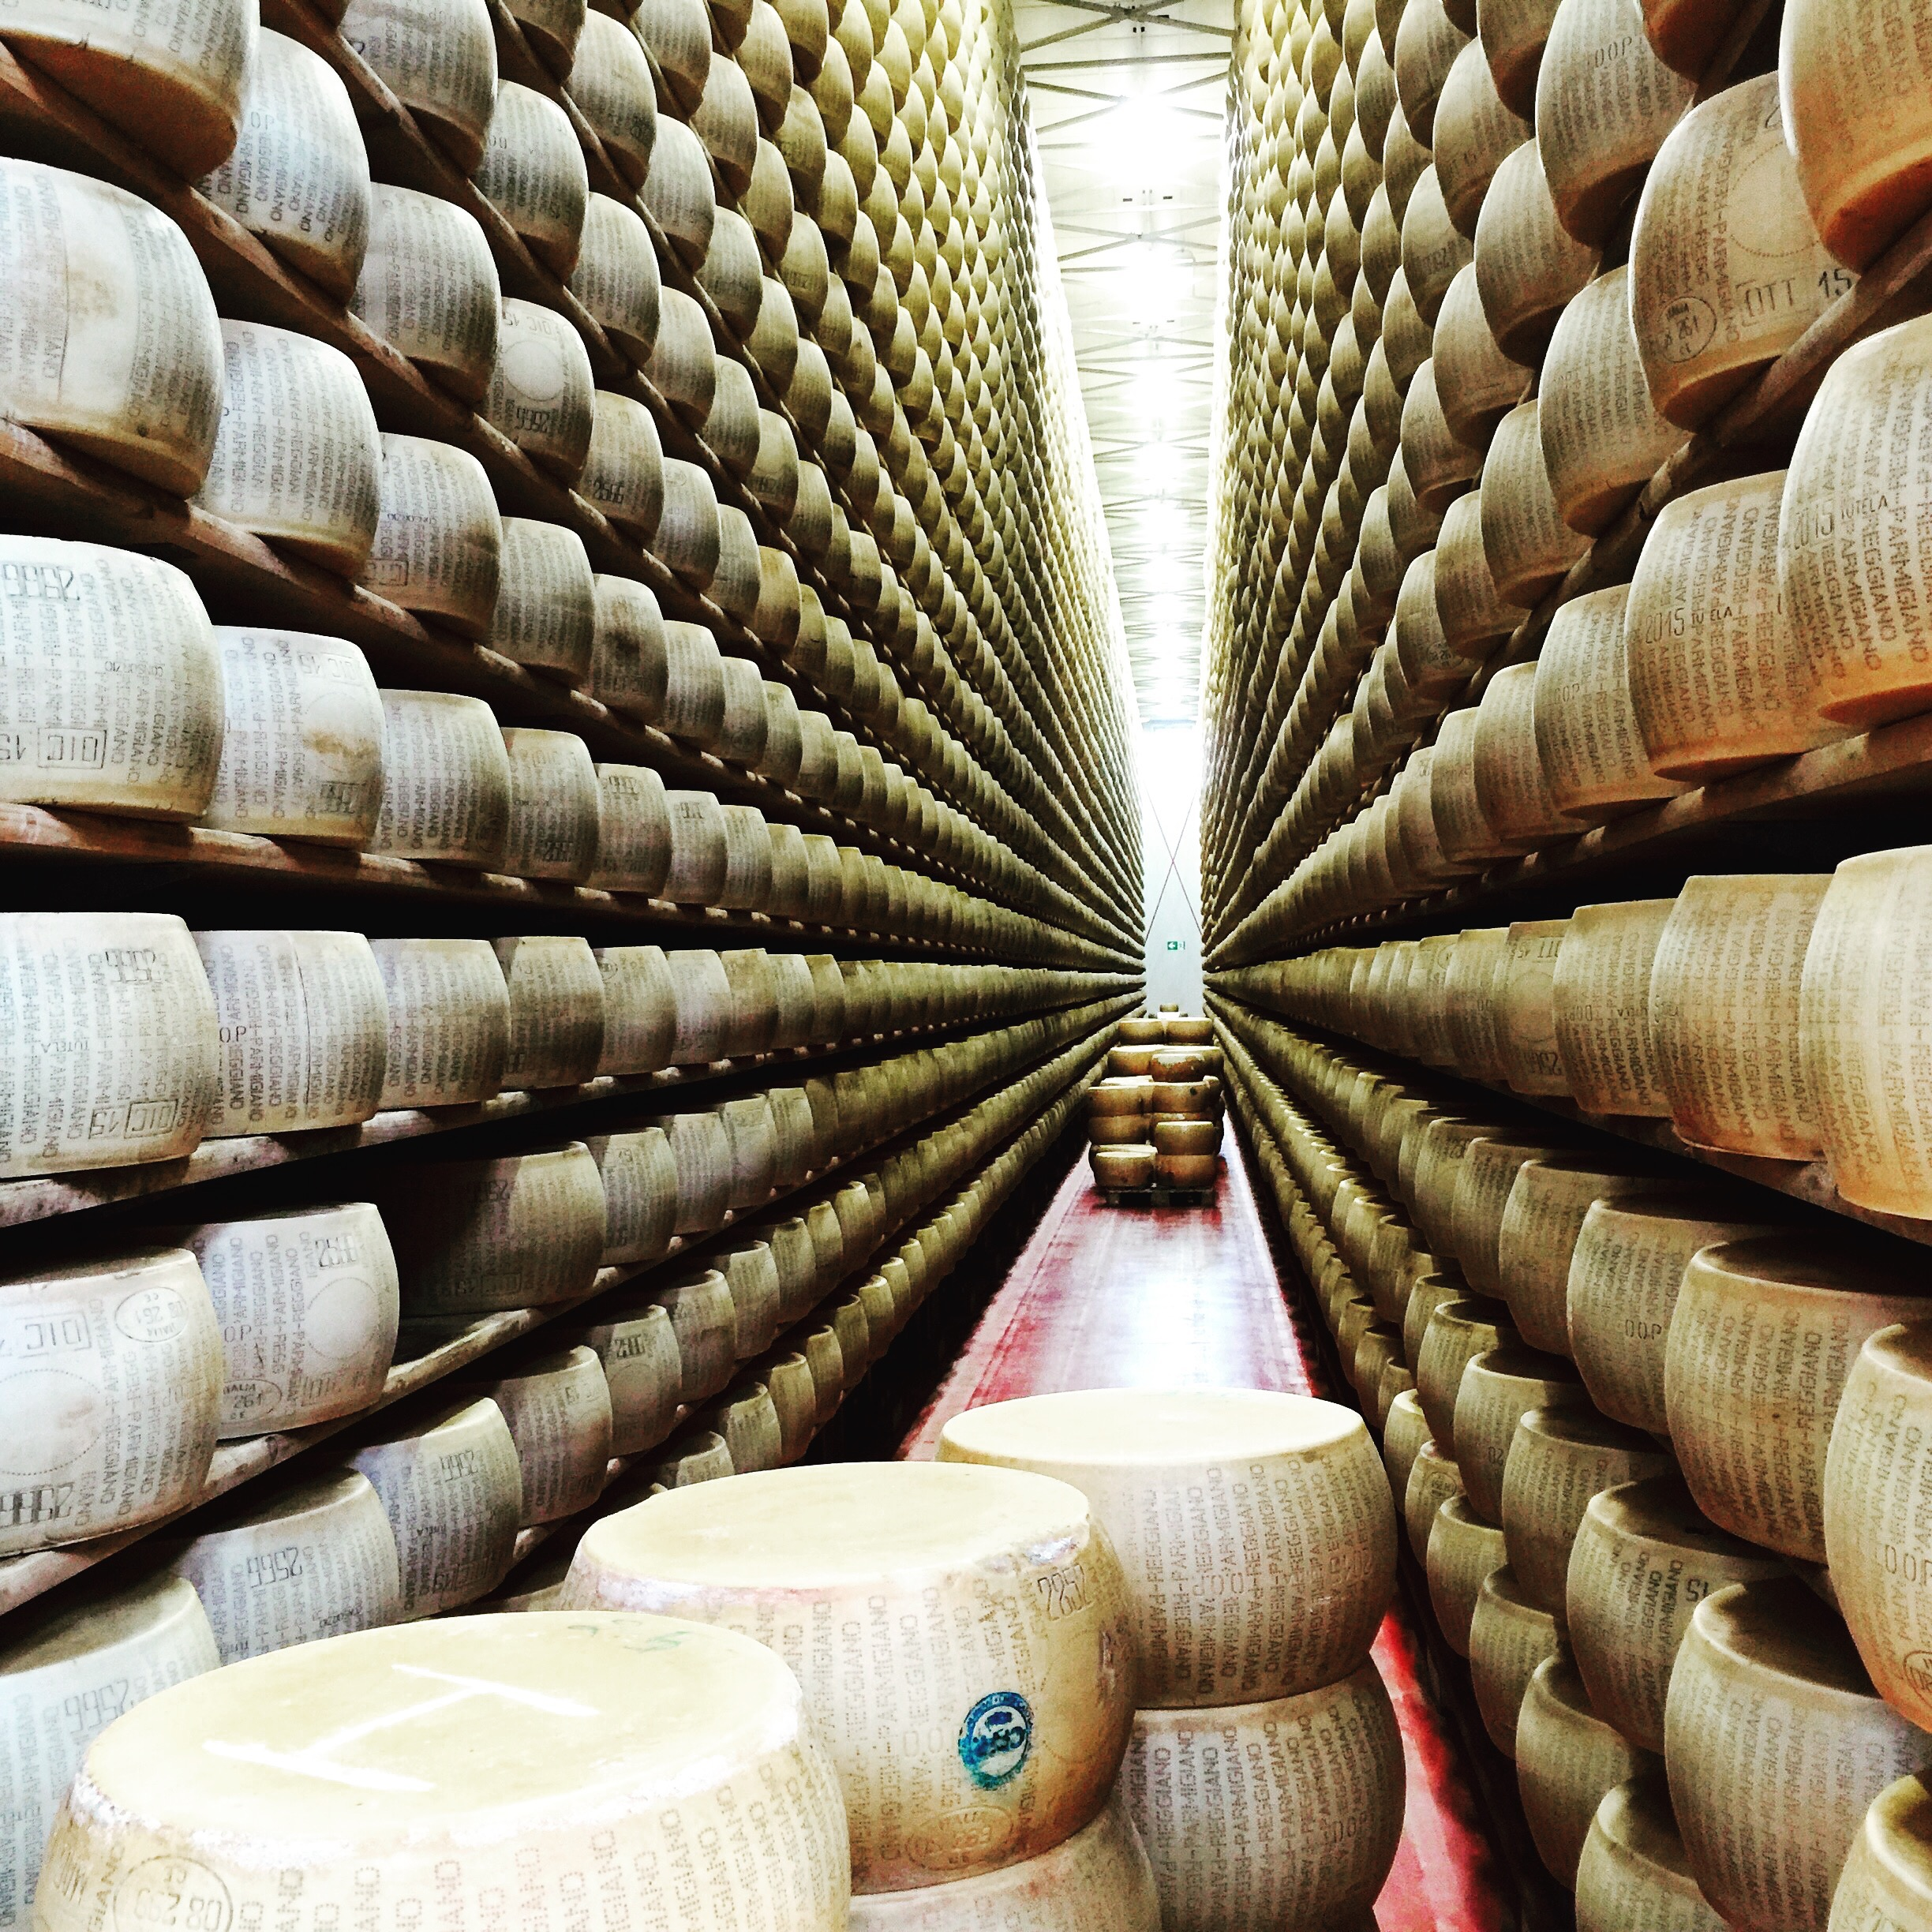 Thousands of wheels of cheese, oh my! A cheese tasting at t he     4 Madonne dell ' Emilia  Dairy.